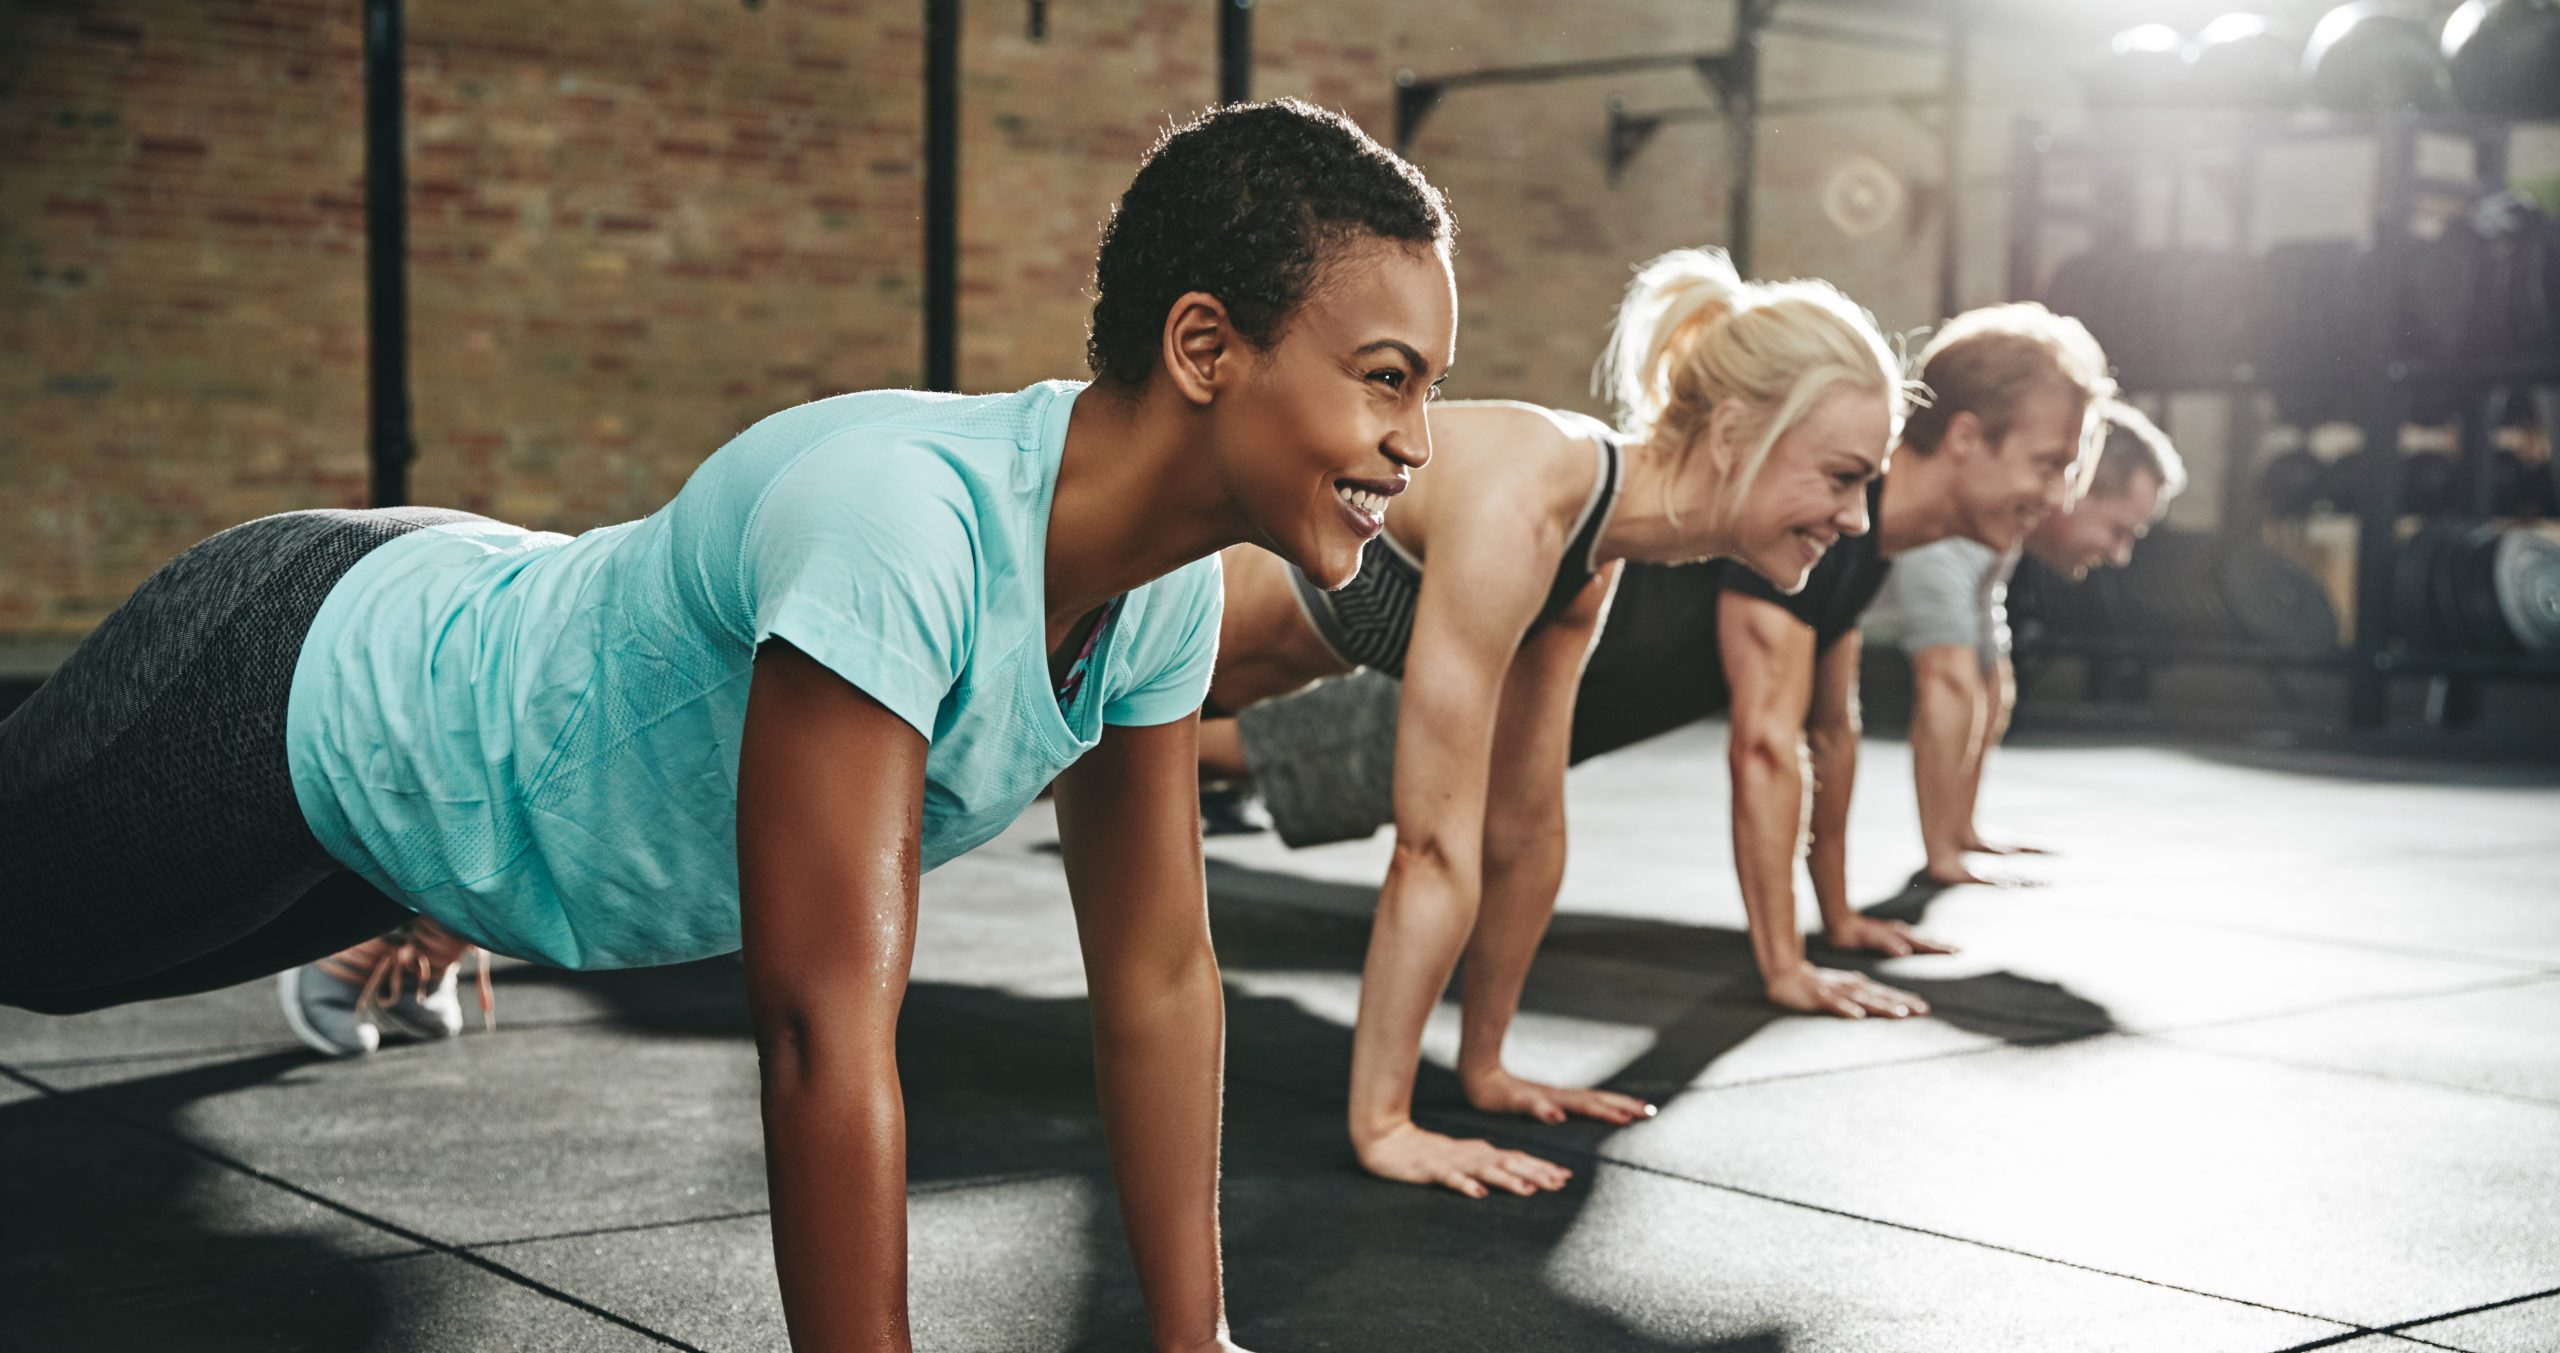 How to Prepare Your Body to Have an Effective Workout Session